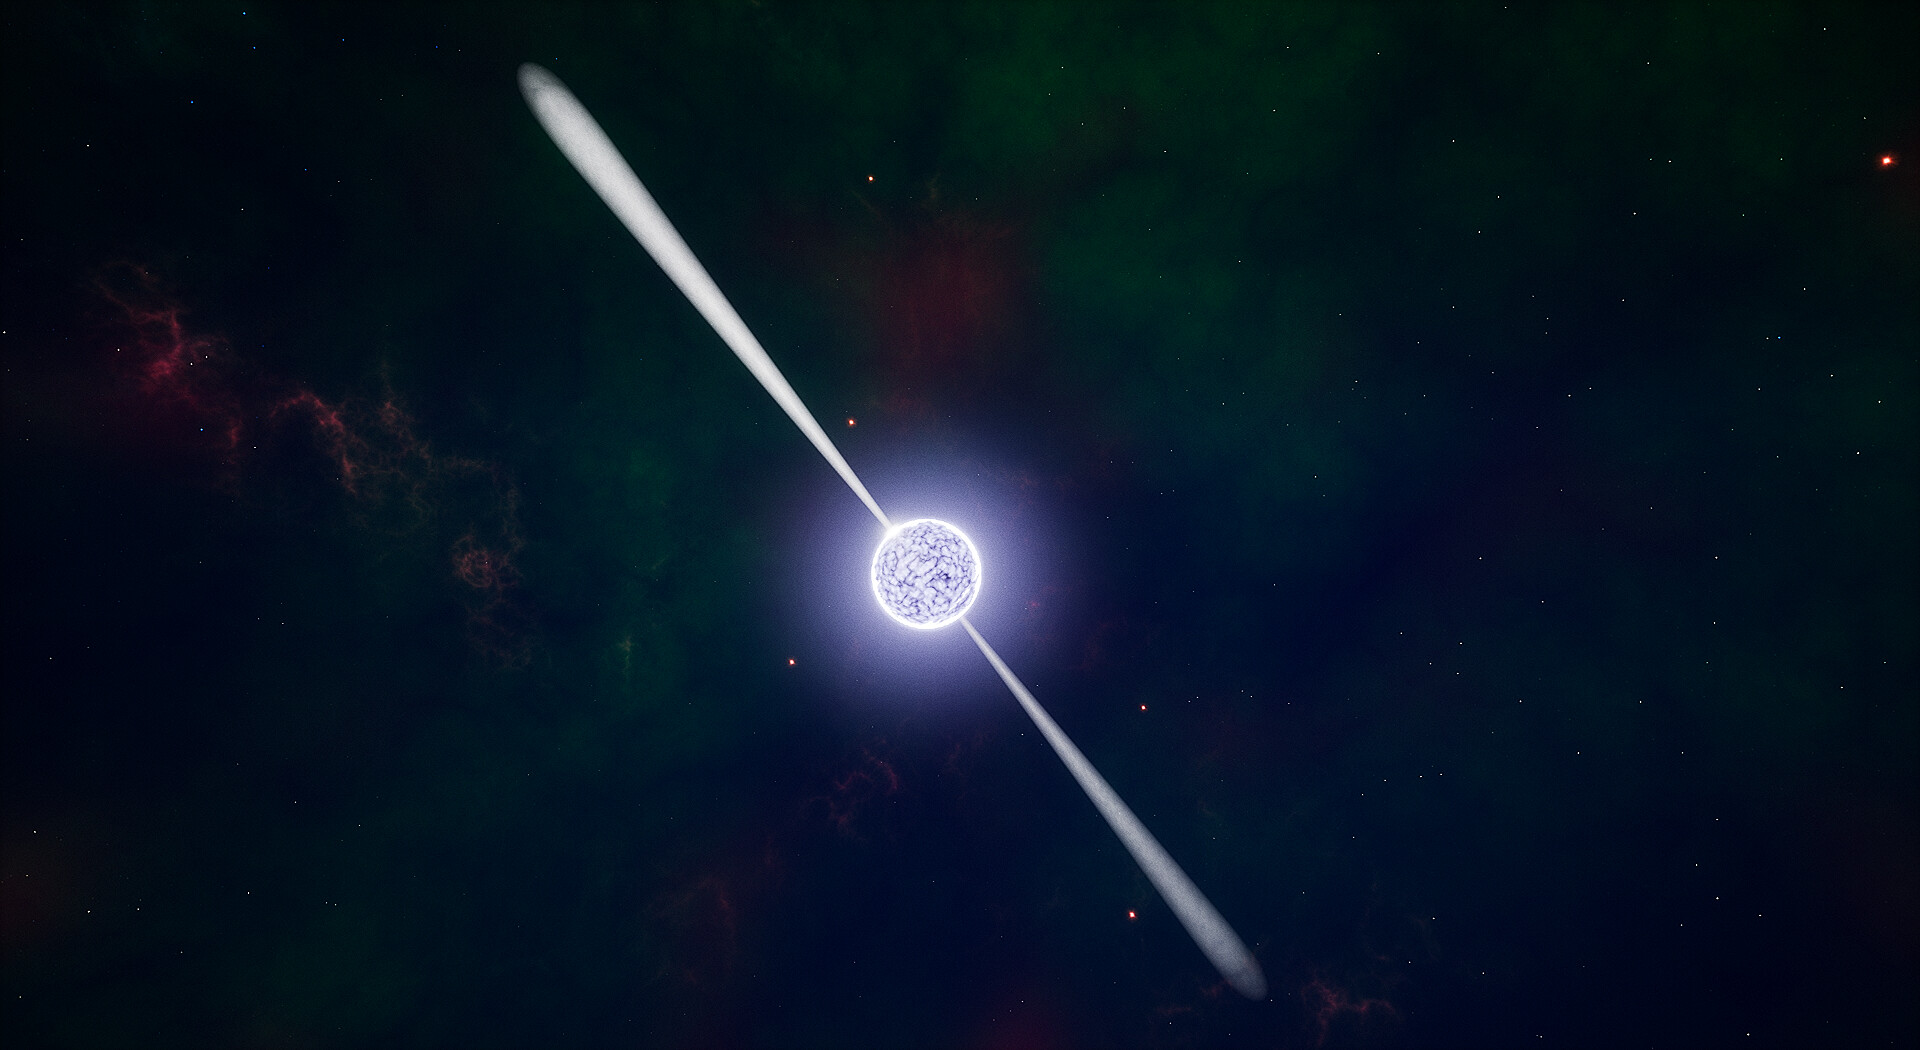 My artistic interpretation of the Spinning Neutron Star. If they spin towards Earth, they are called Pulsars. The highest registered speed is 716 times per second, called PSR J1748-2446ad.